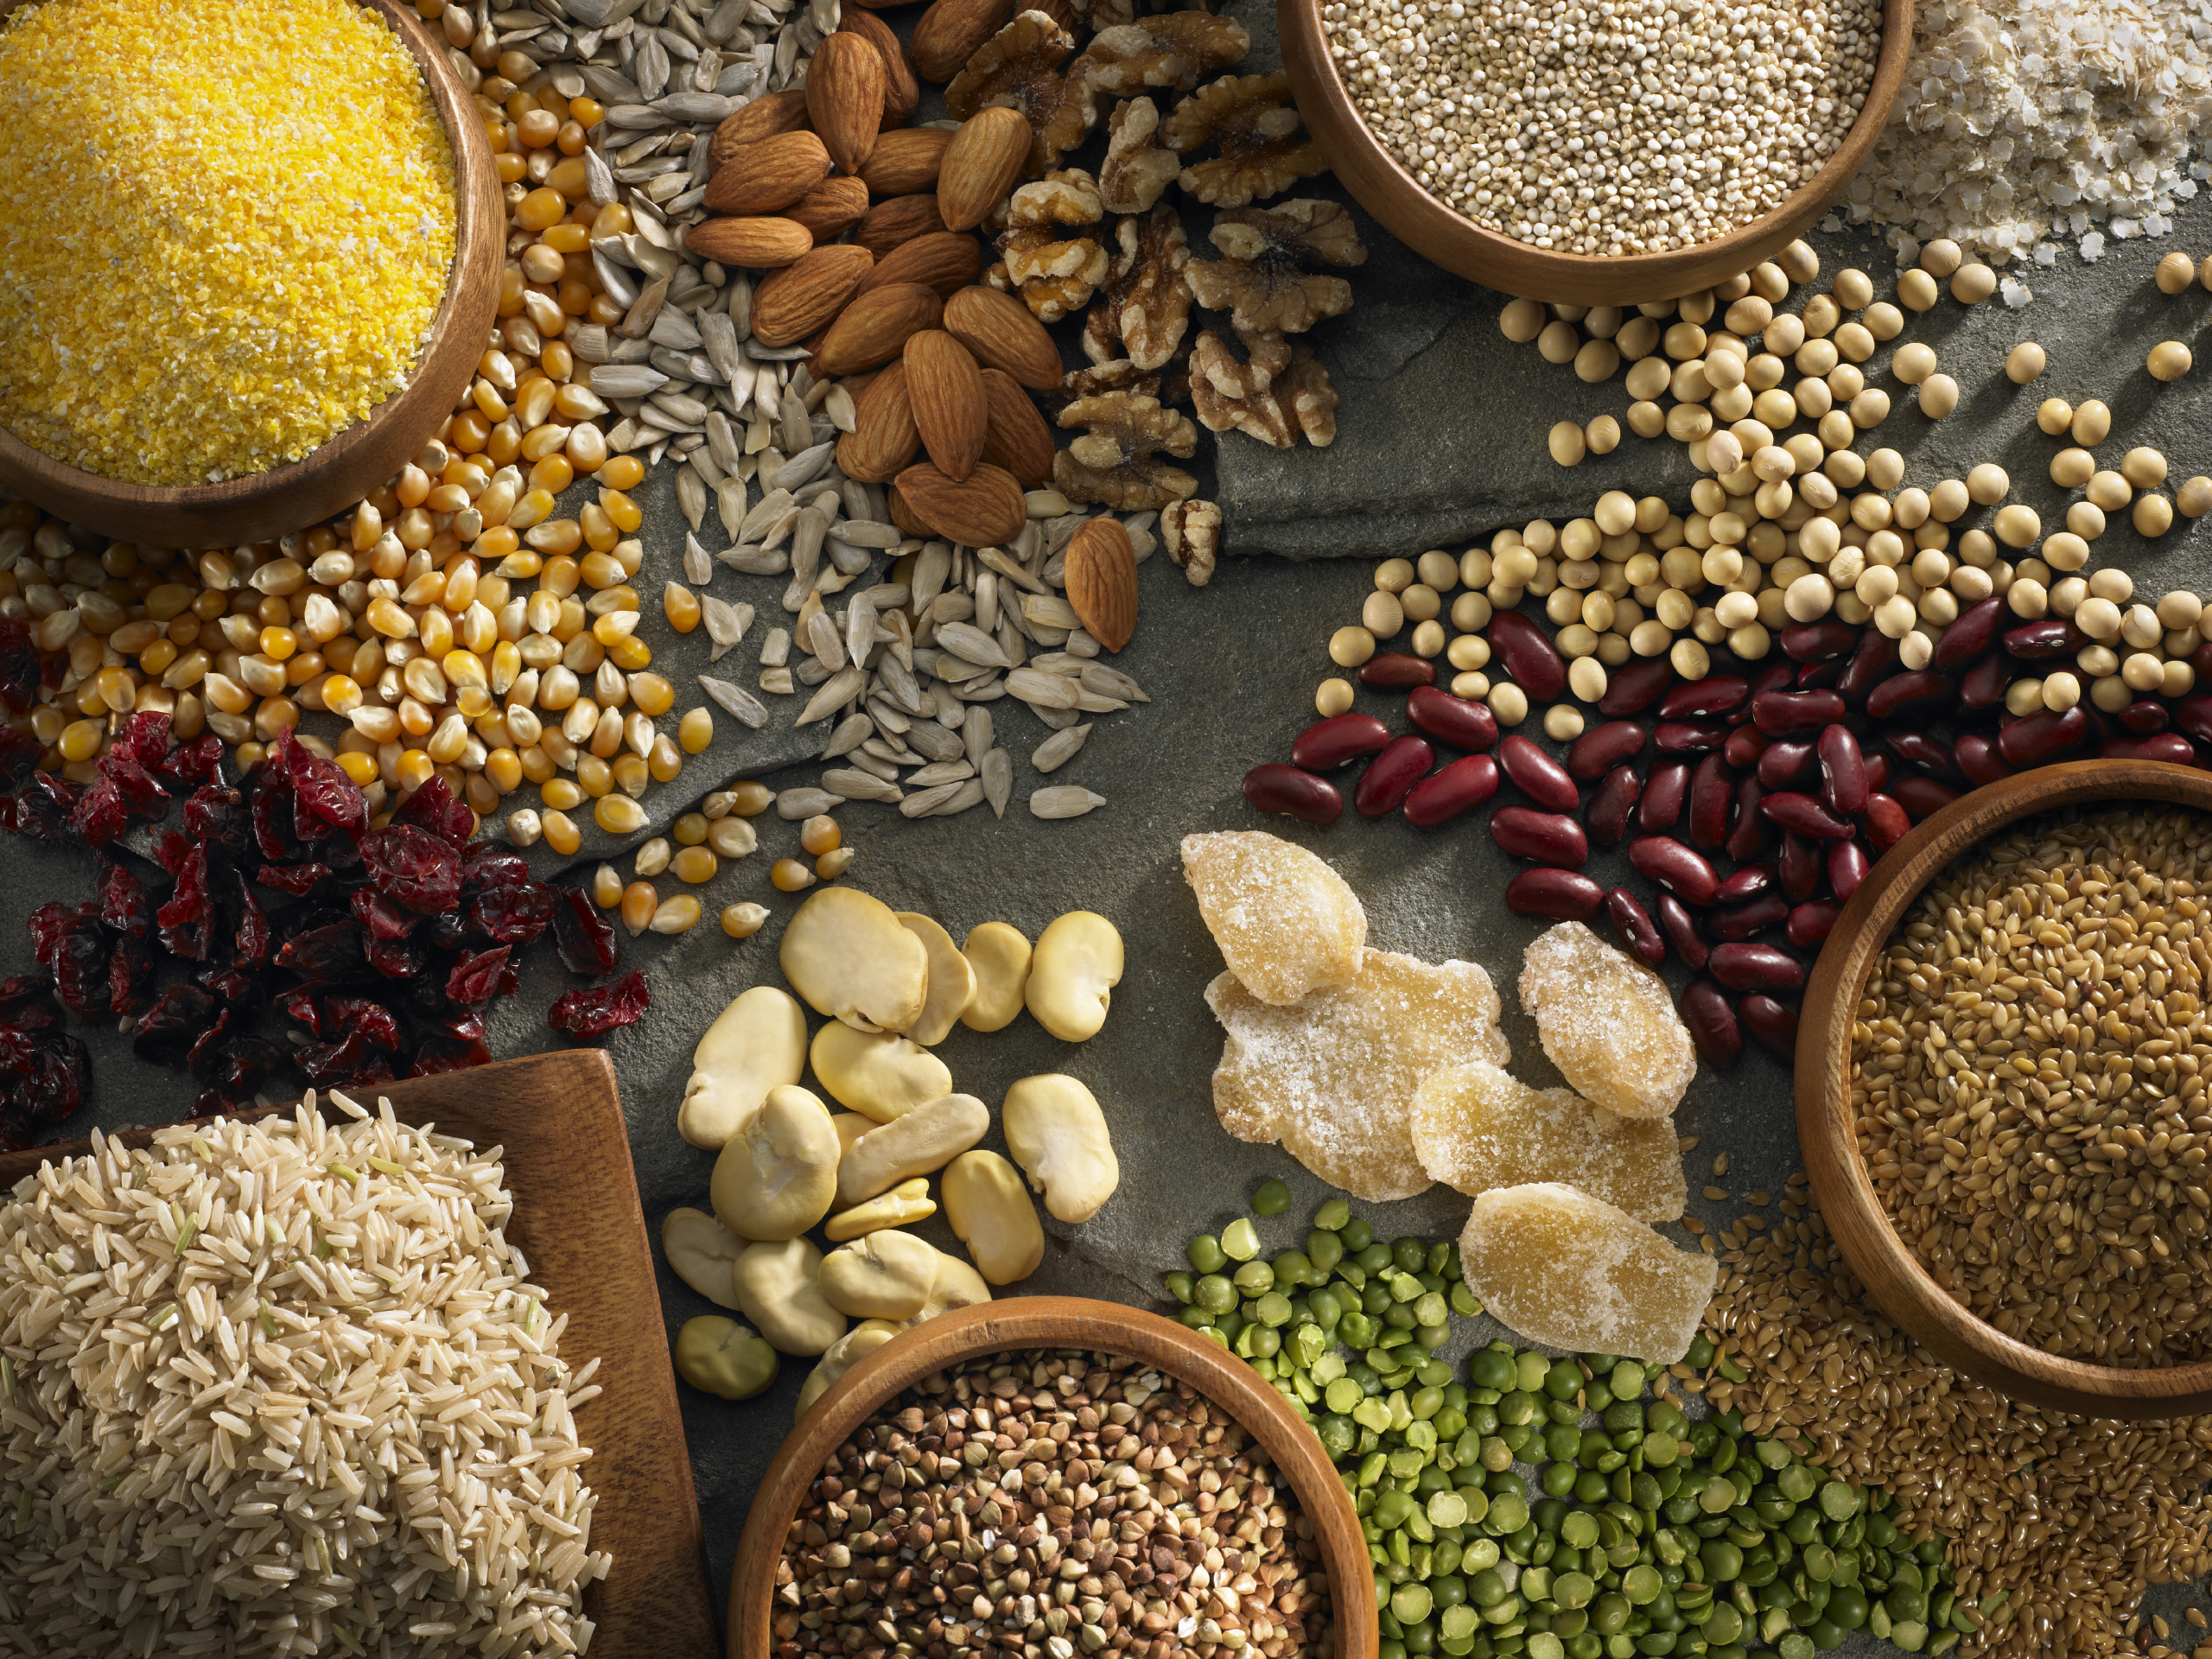 Whole Grains And Pulses